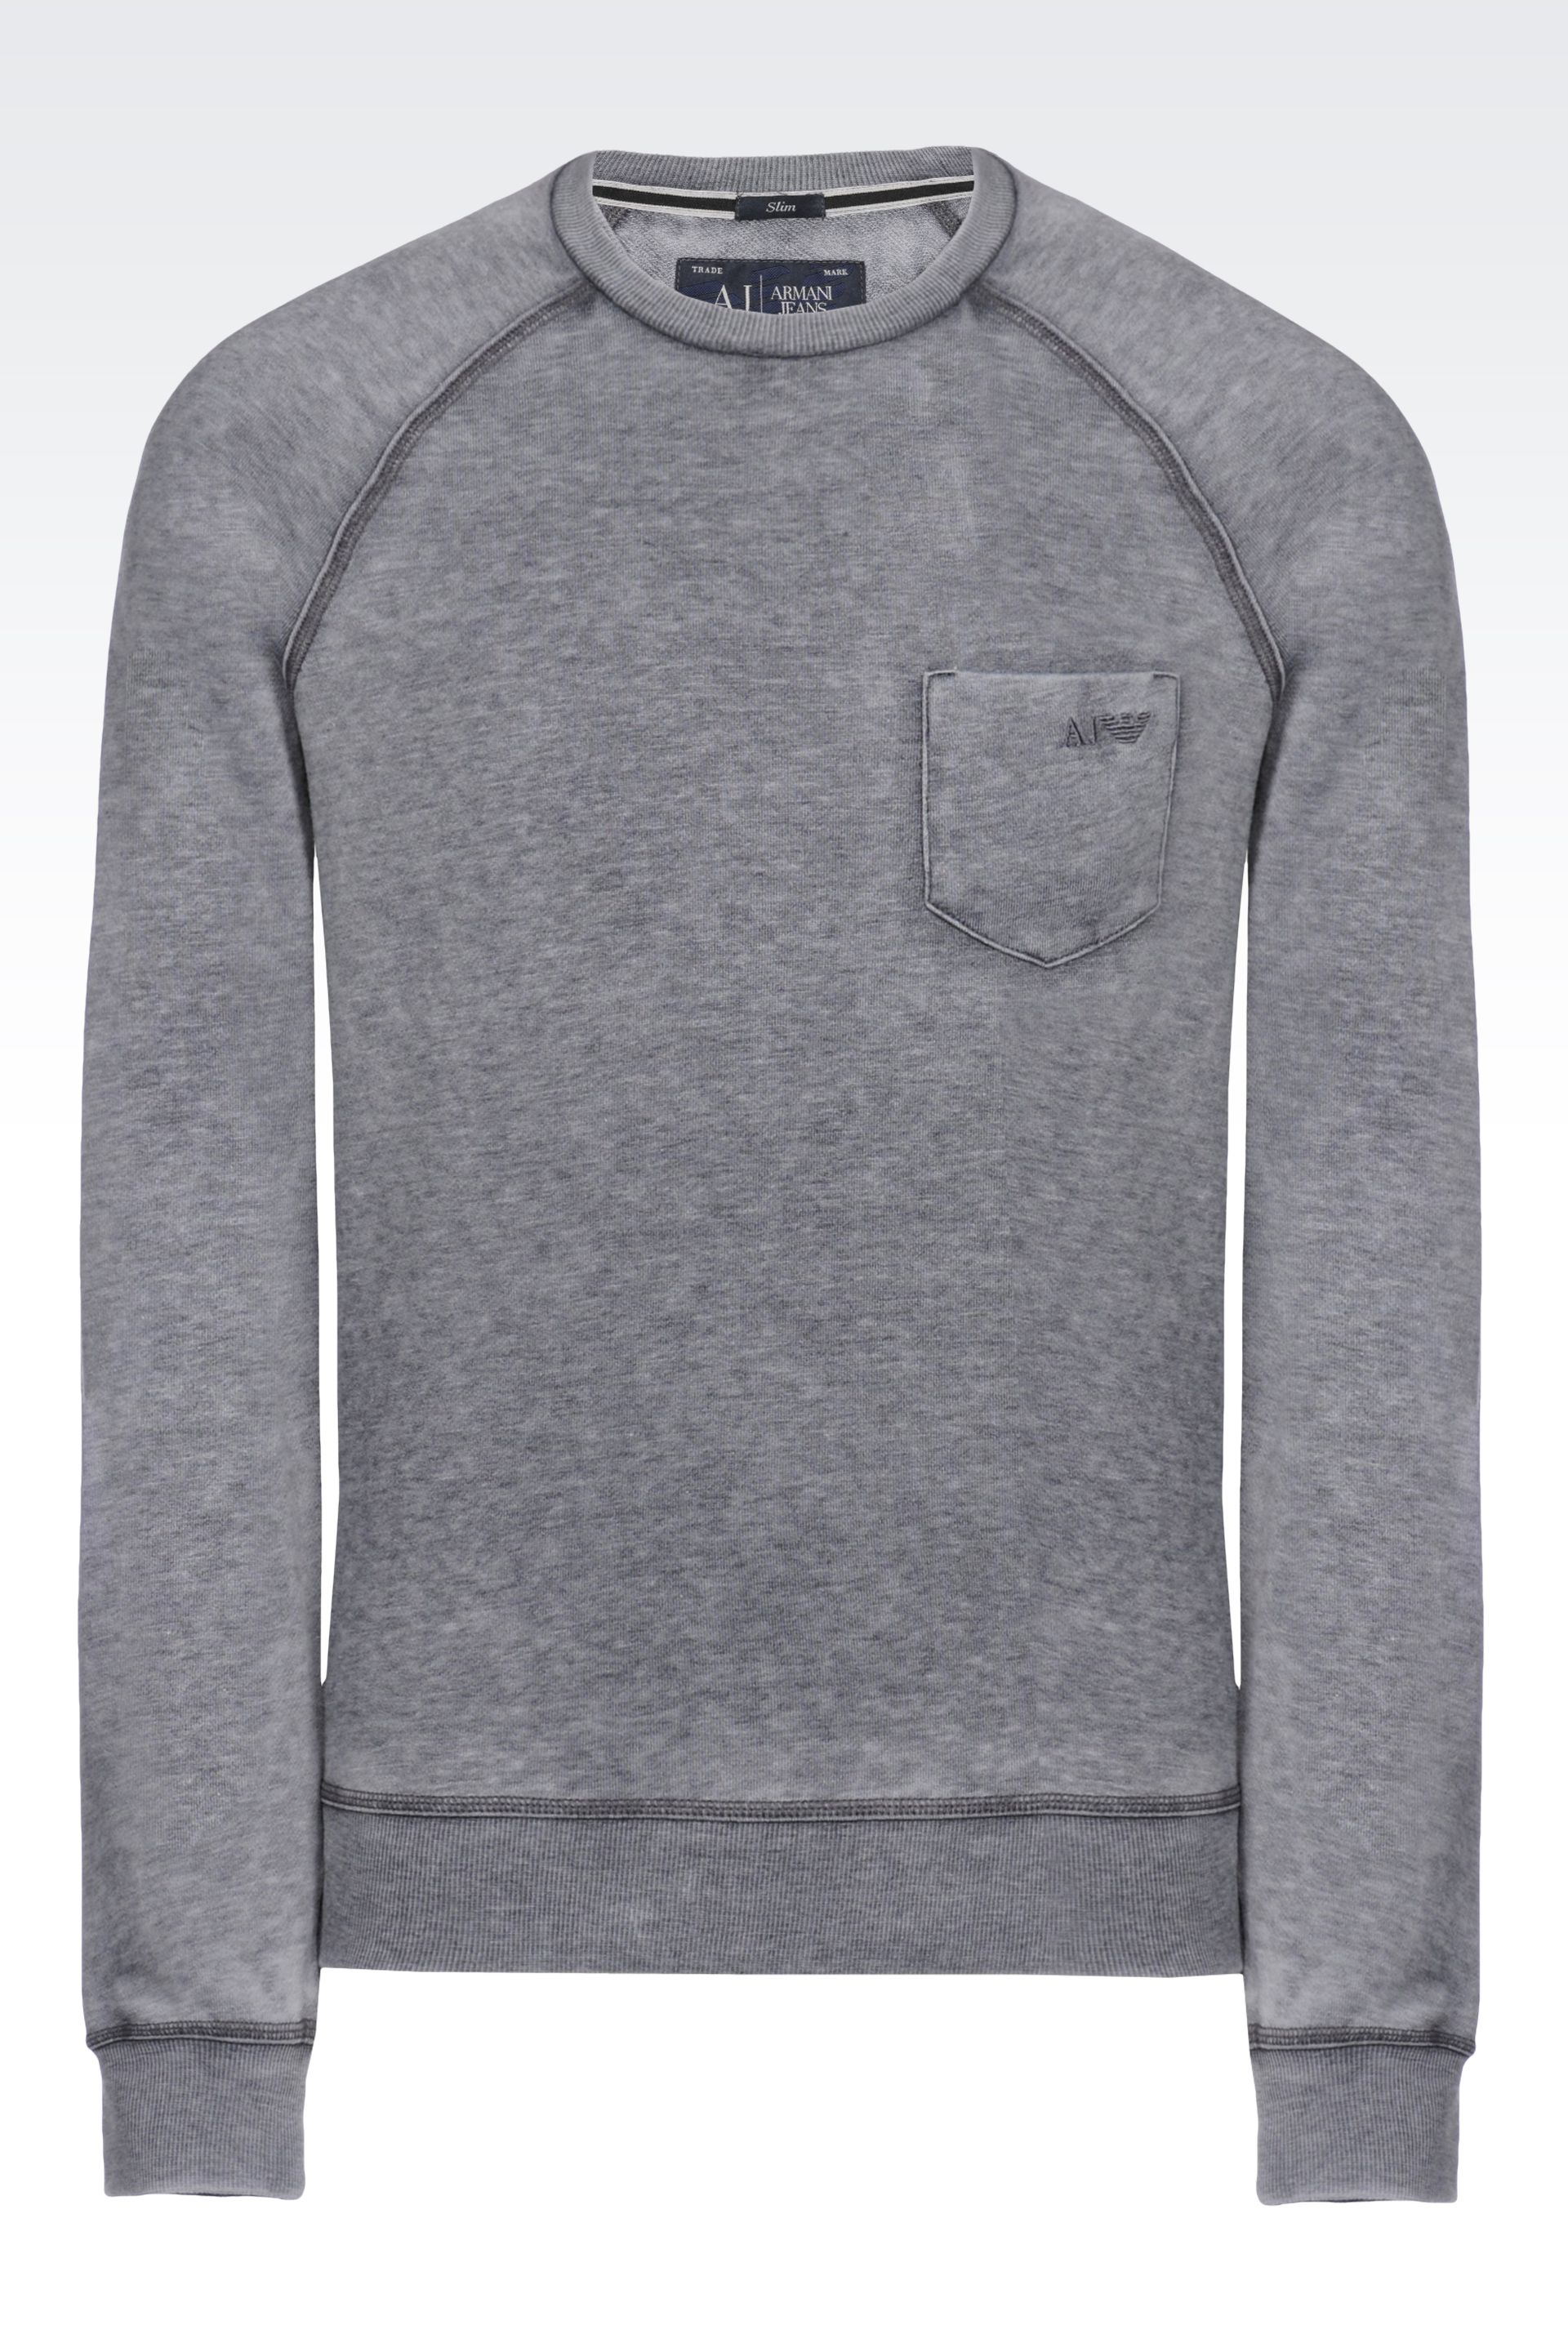 Armani jeans Crew Neck Sweatshirt with Pocket in Gray for Men | Lyst